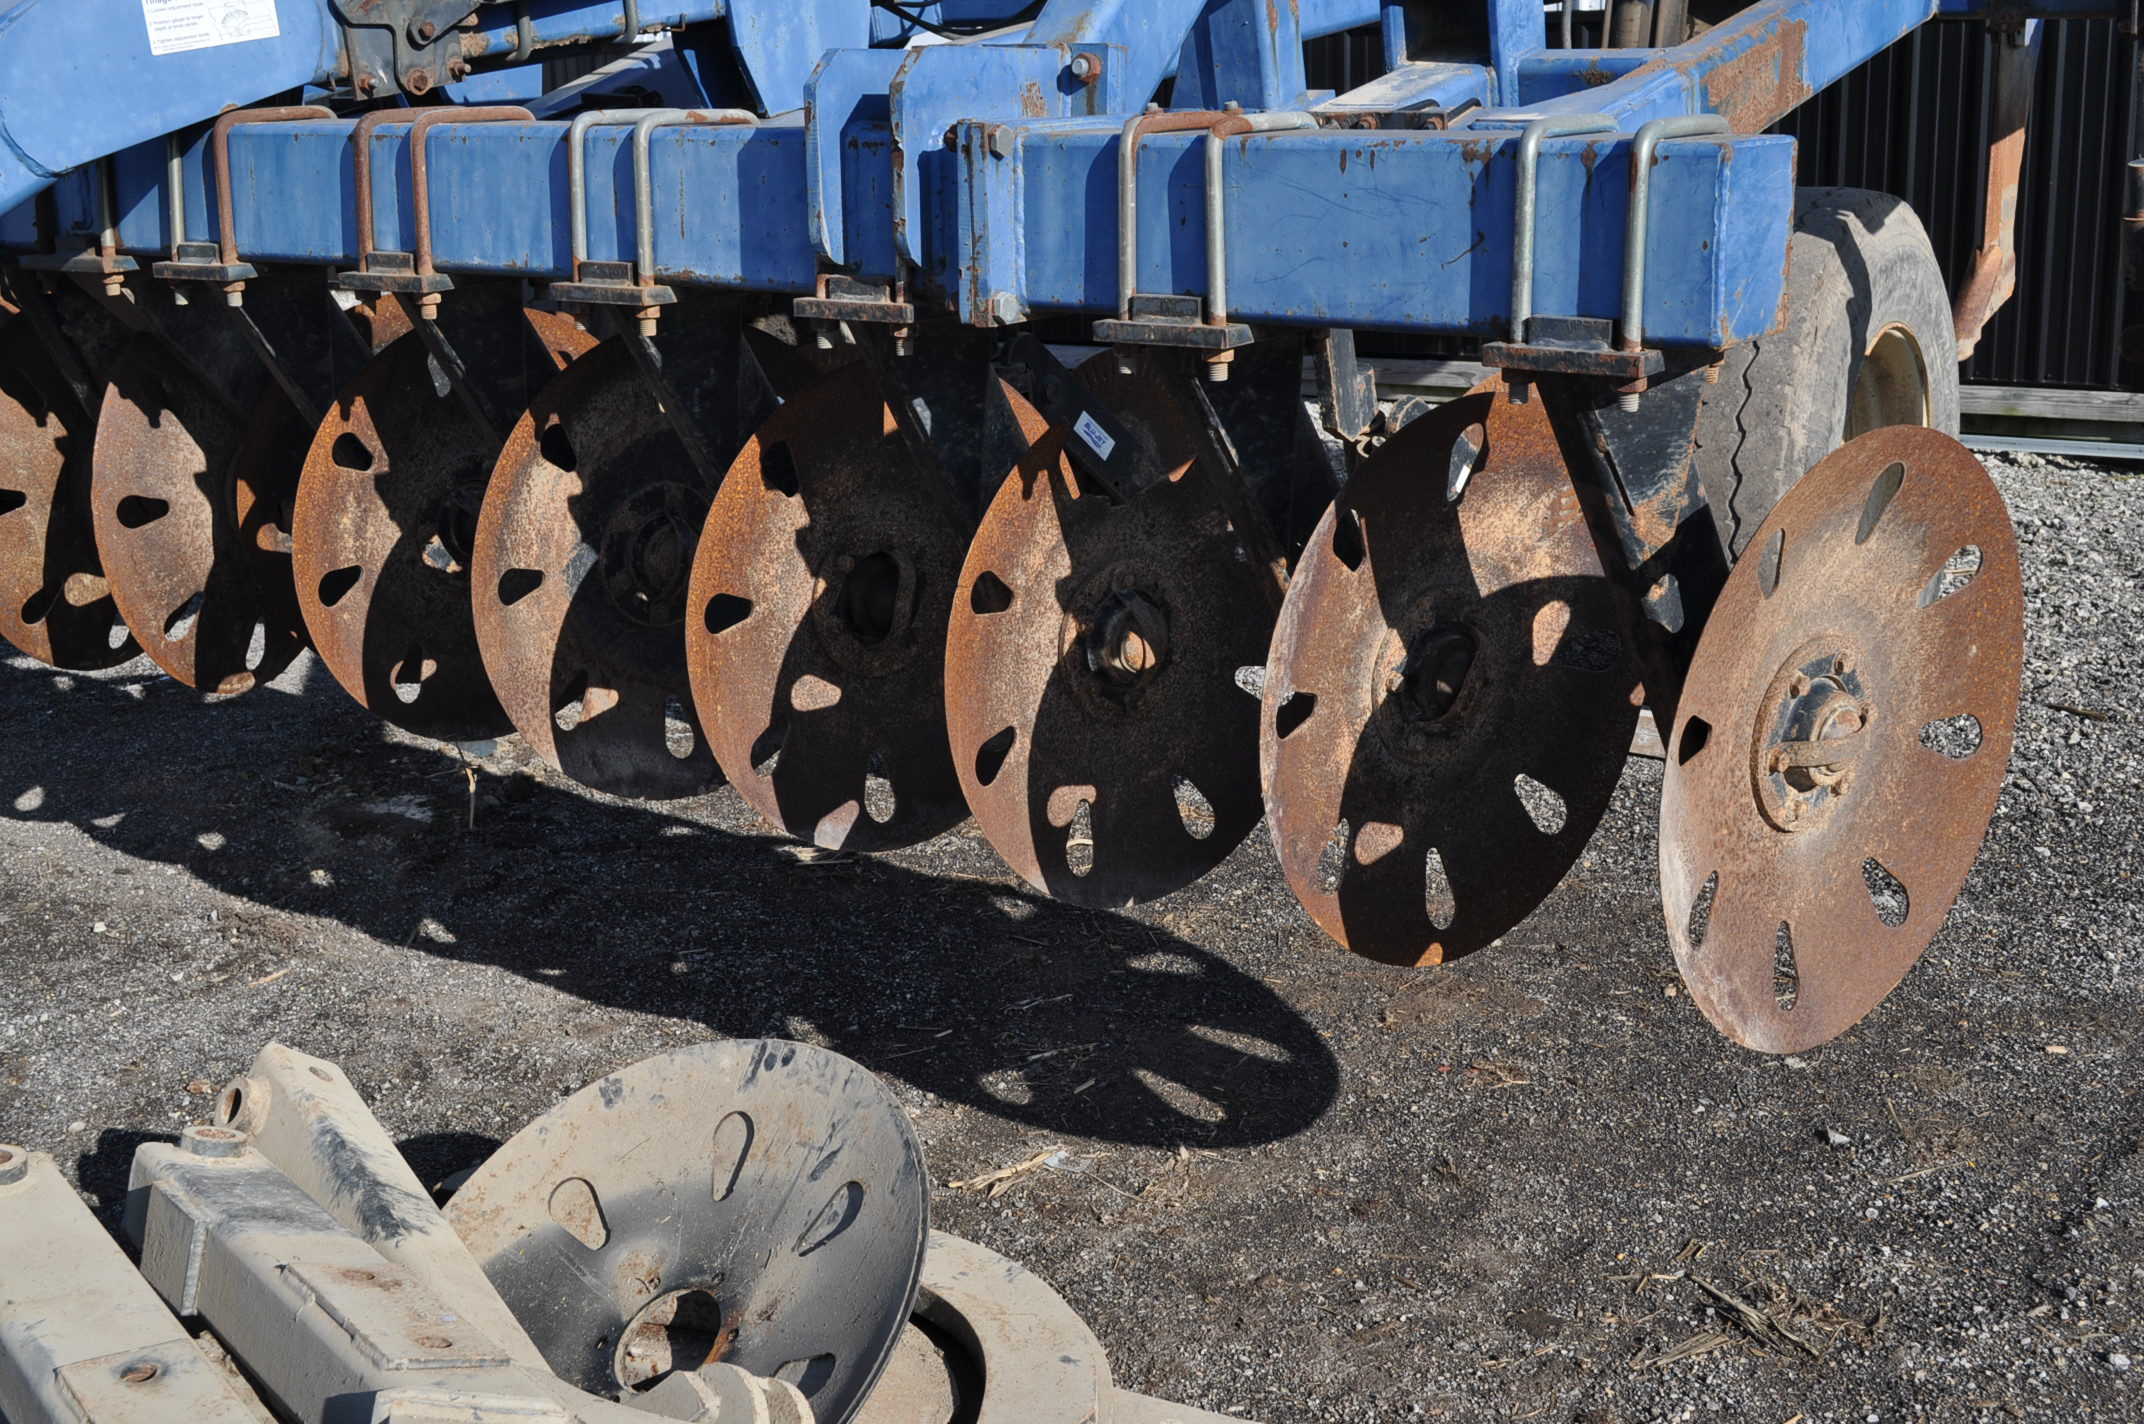 Blu-Jet Tillage Pro 7 shank inline ripper, front and rear hyd adjustable discs, sells with extra - Image 7 of 18